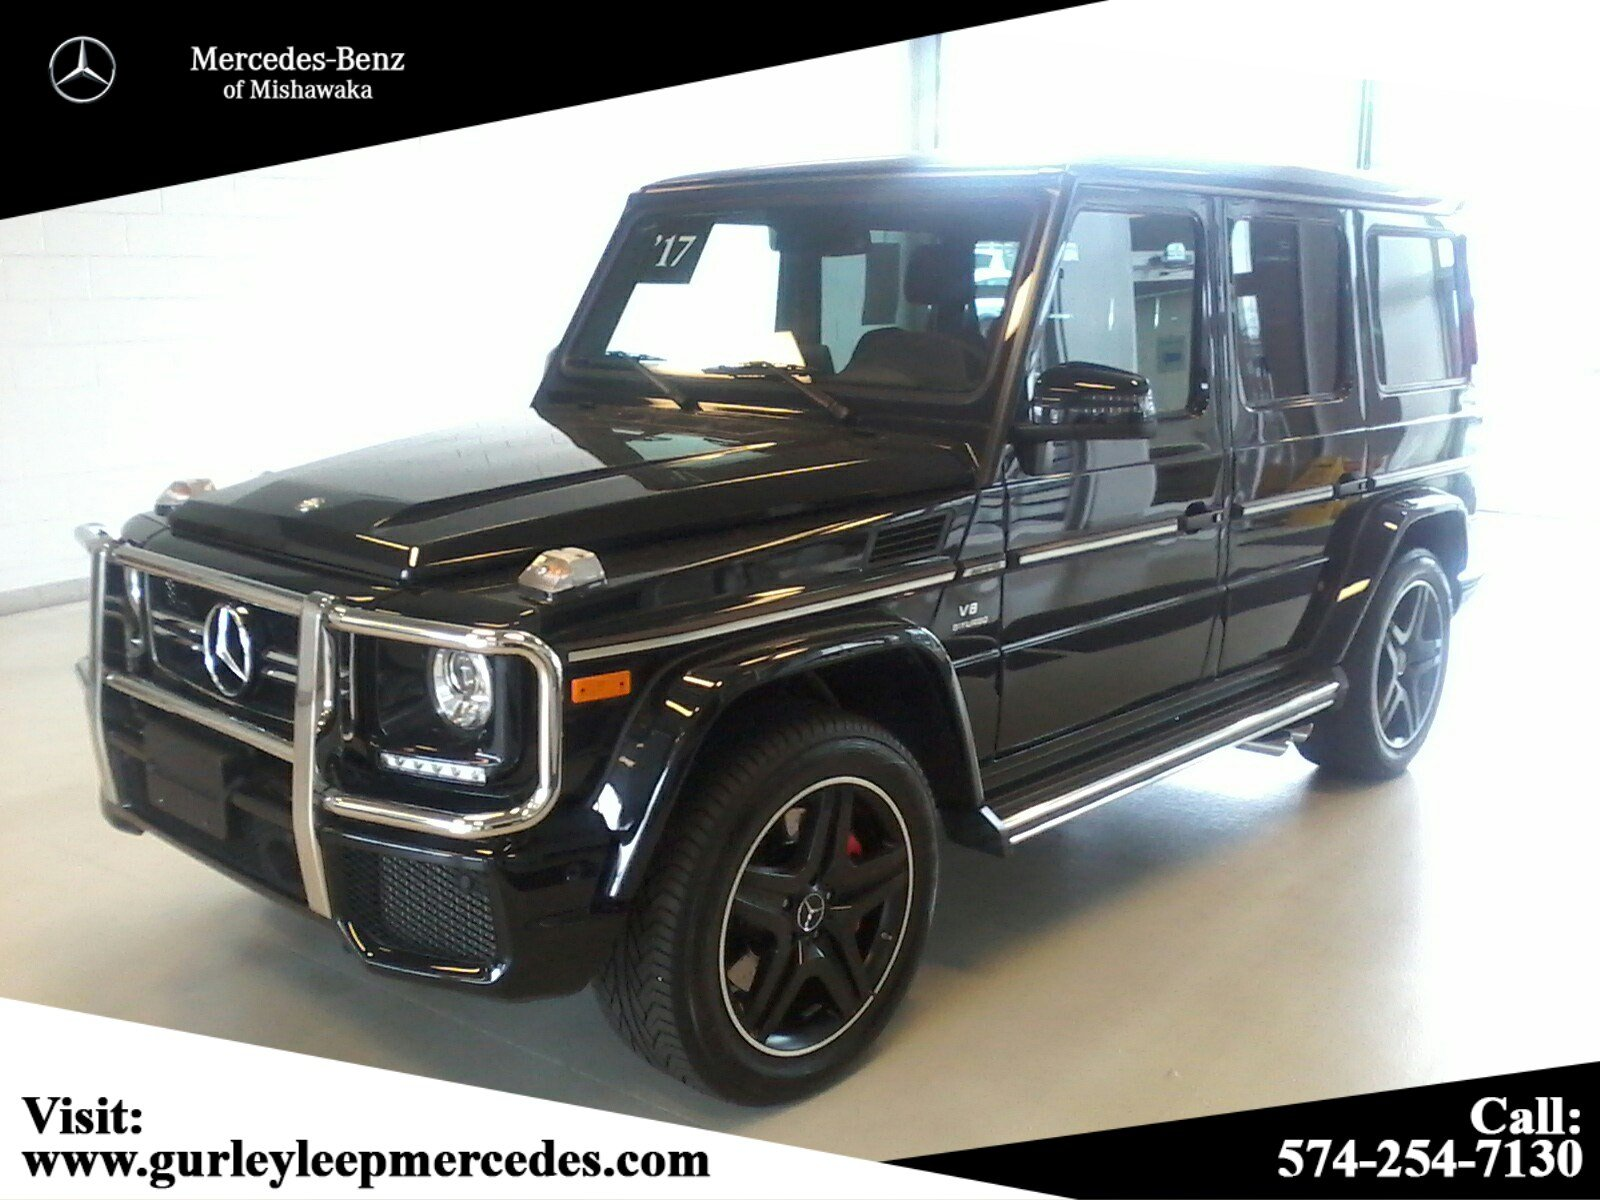 Certified Pre Owned 2017 Mercedes Benz G Class AMG G 63 SUV